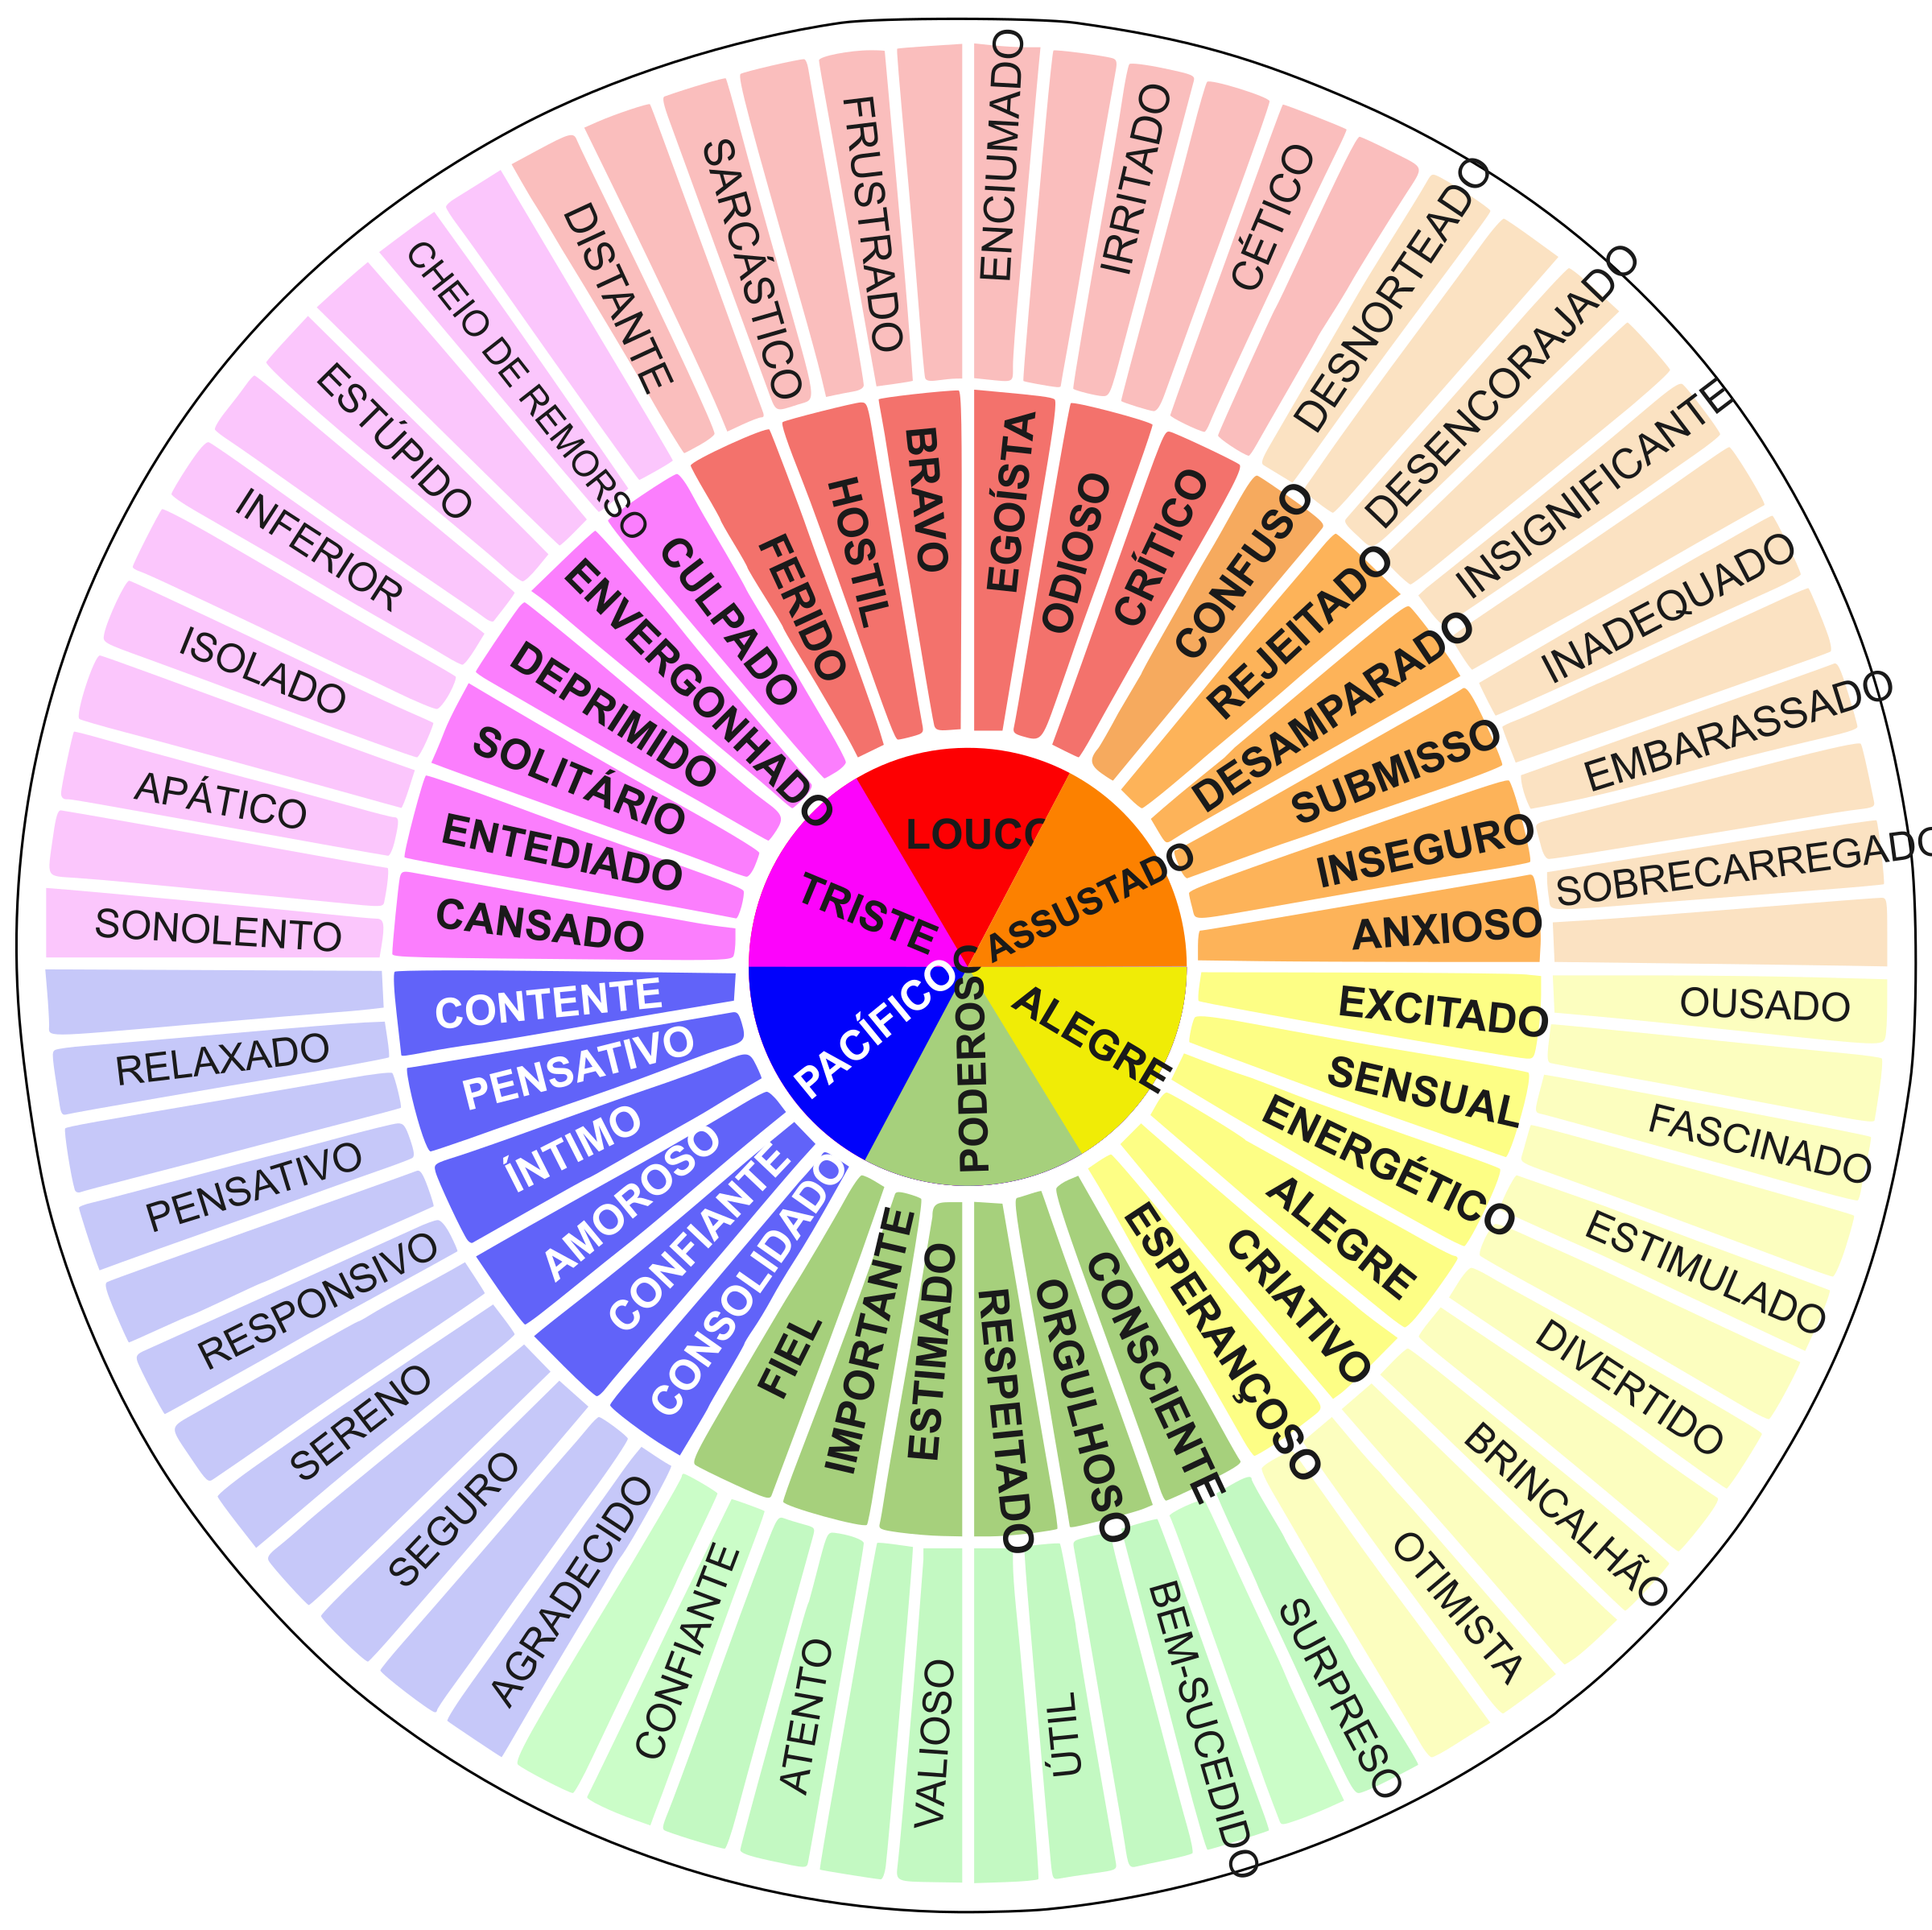 The feeling wheel (portuguese) by ezequias